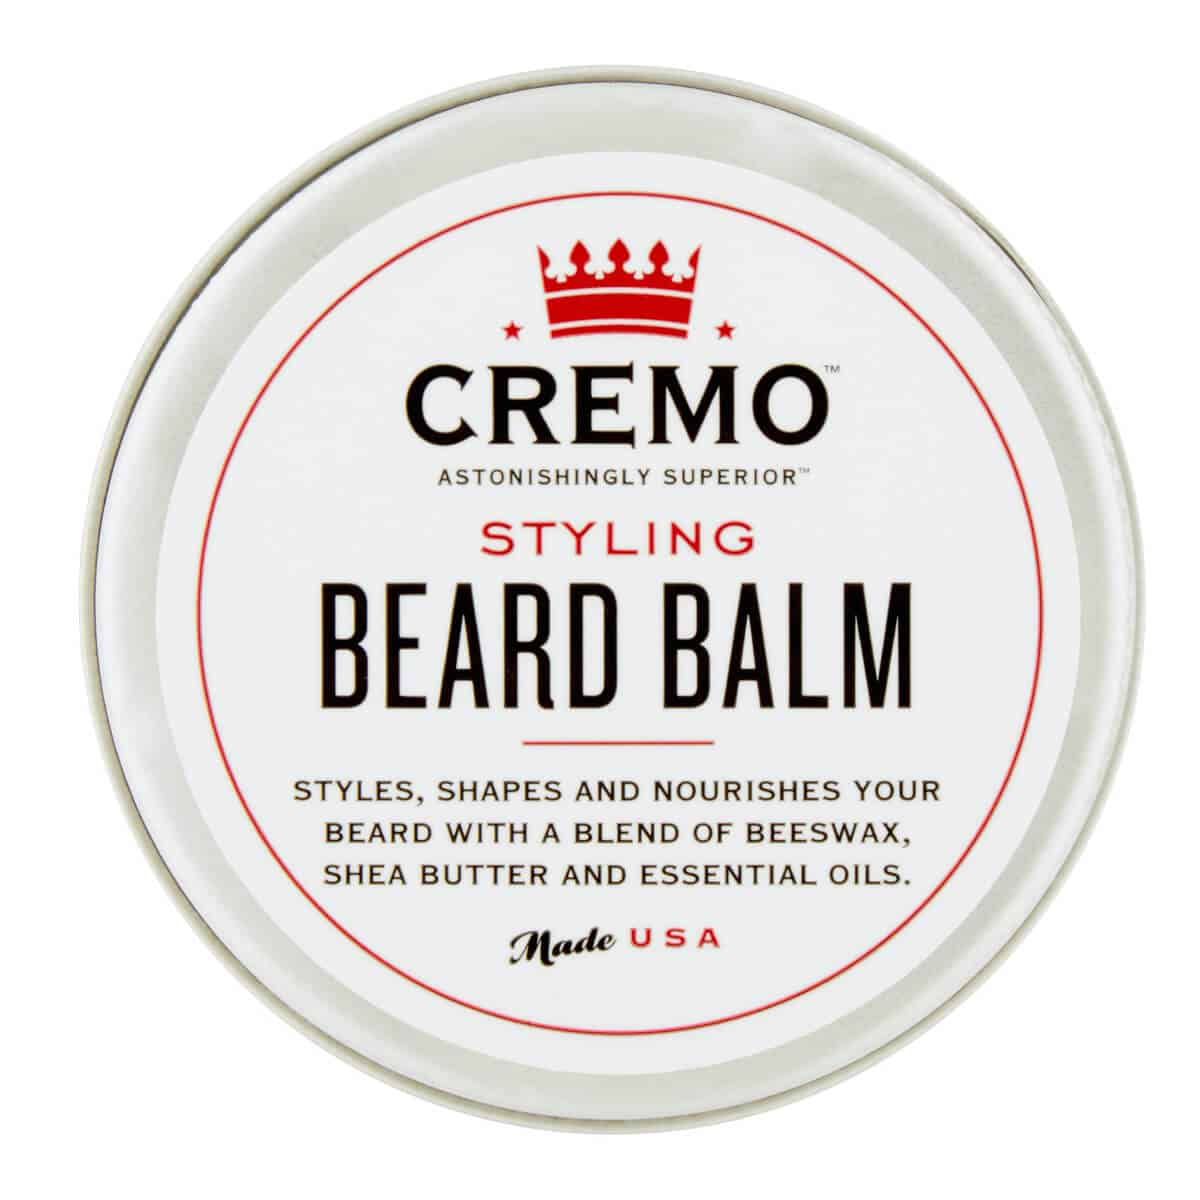 Cremo Astonishingly Superior Styling Mint Blend Beard Balm, 2 oz